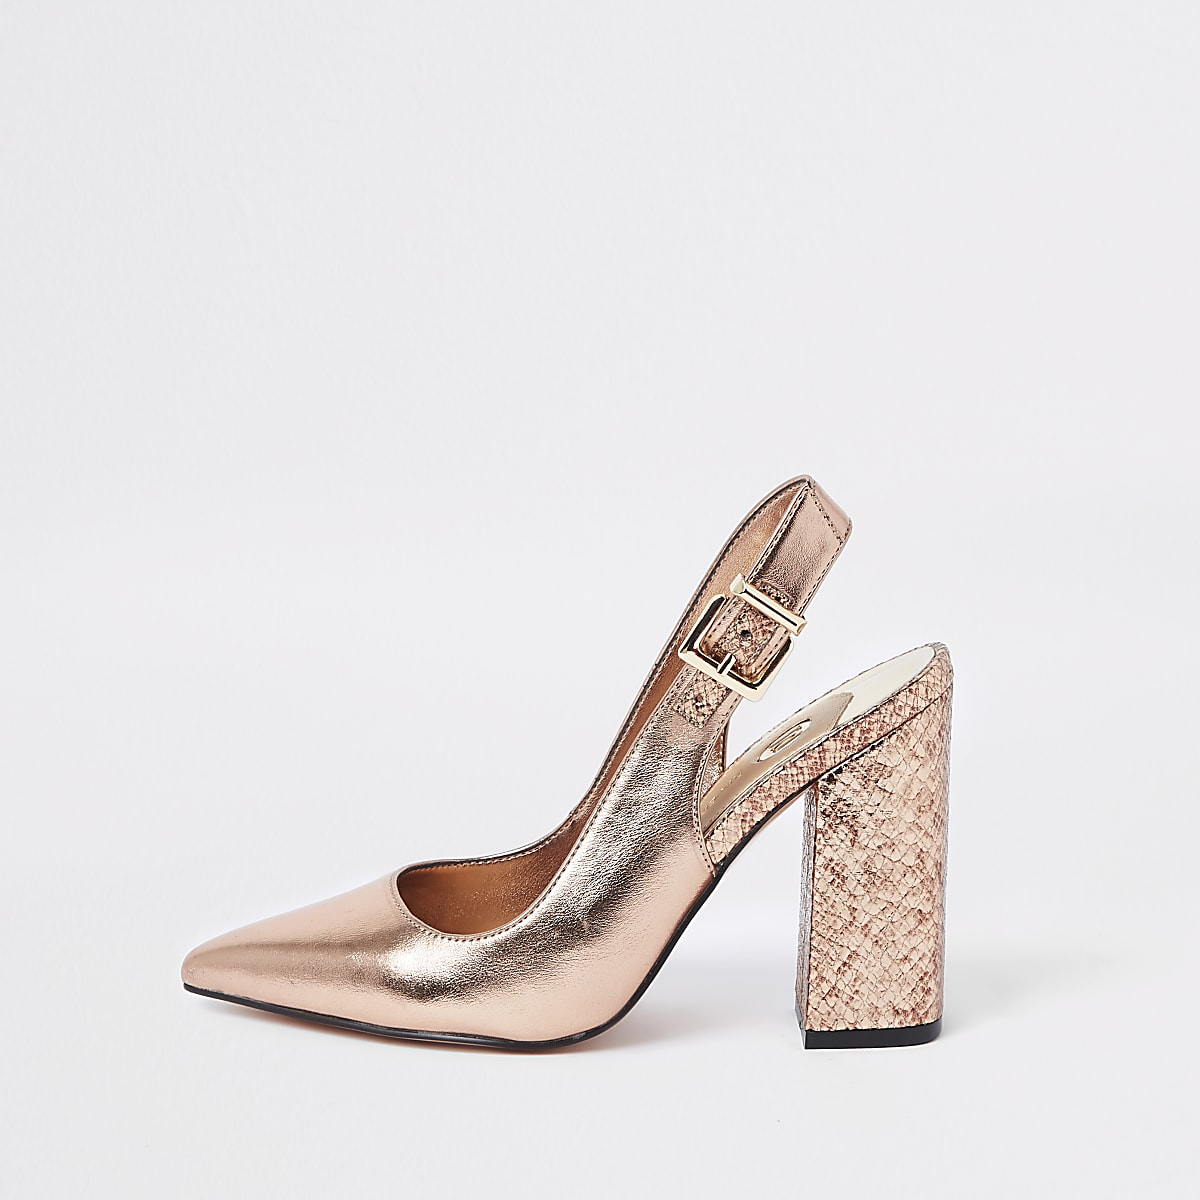 Bright gold block heel slingback court shoes